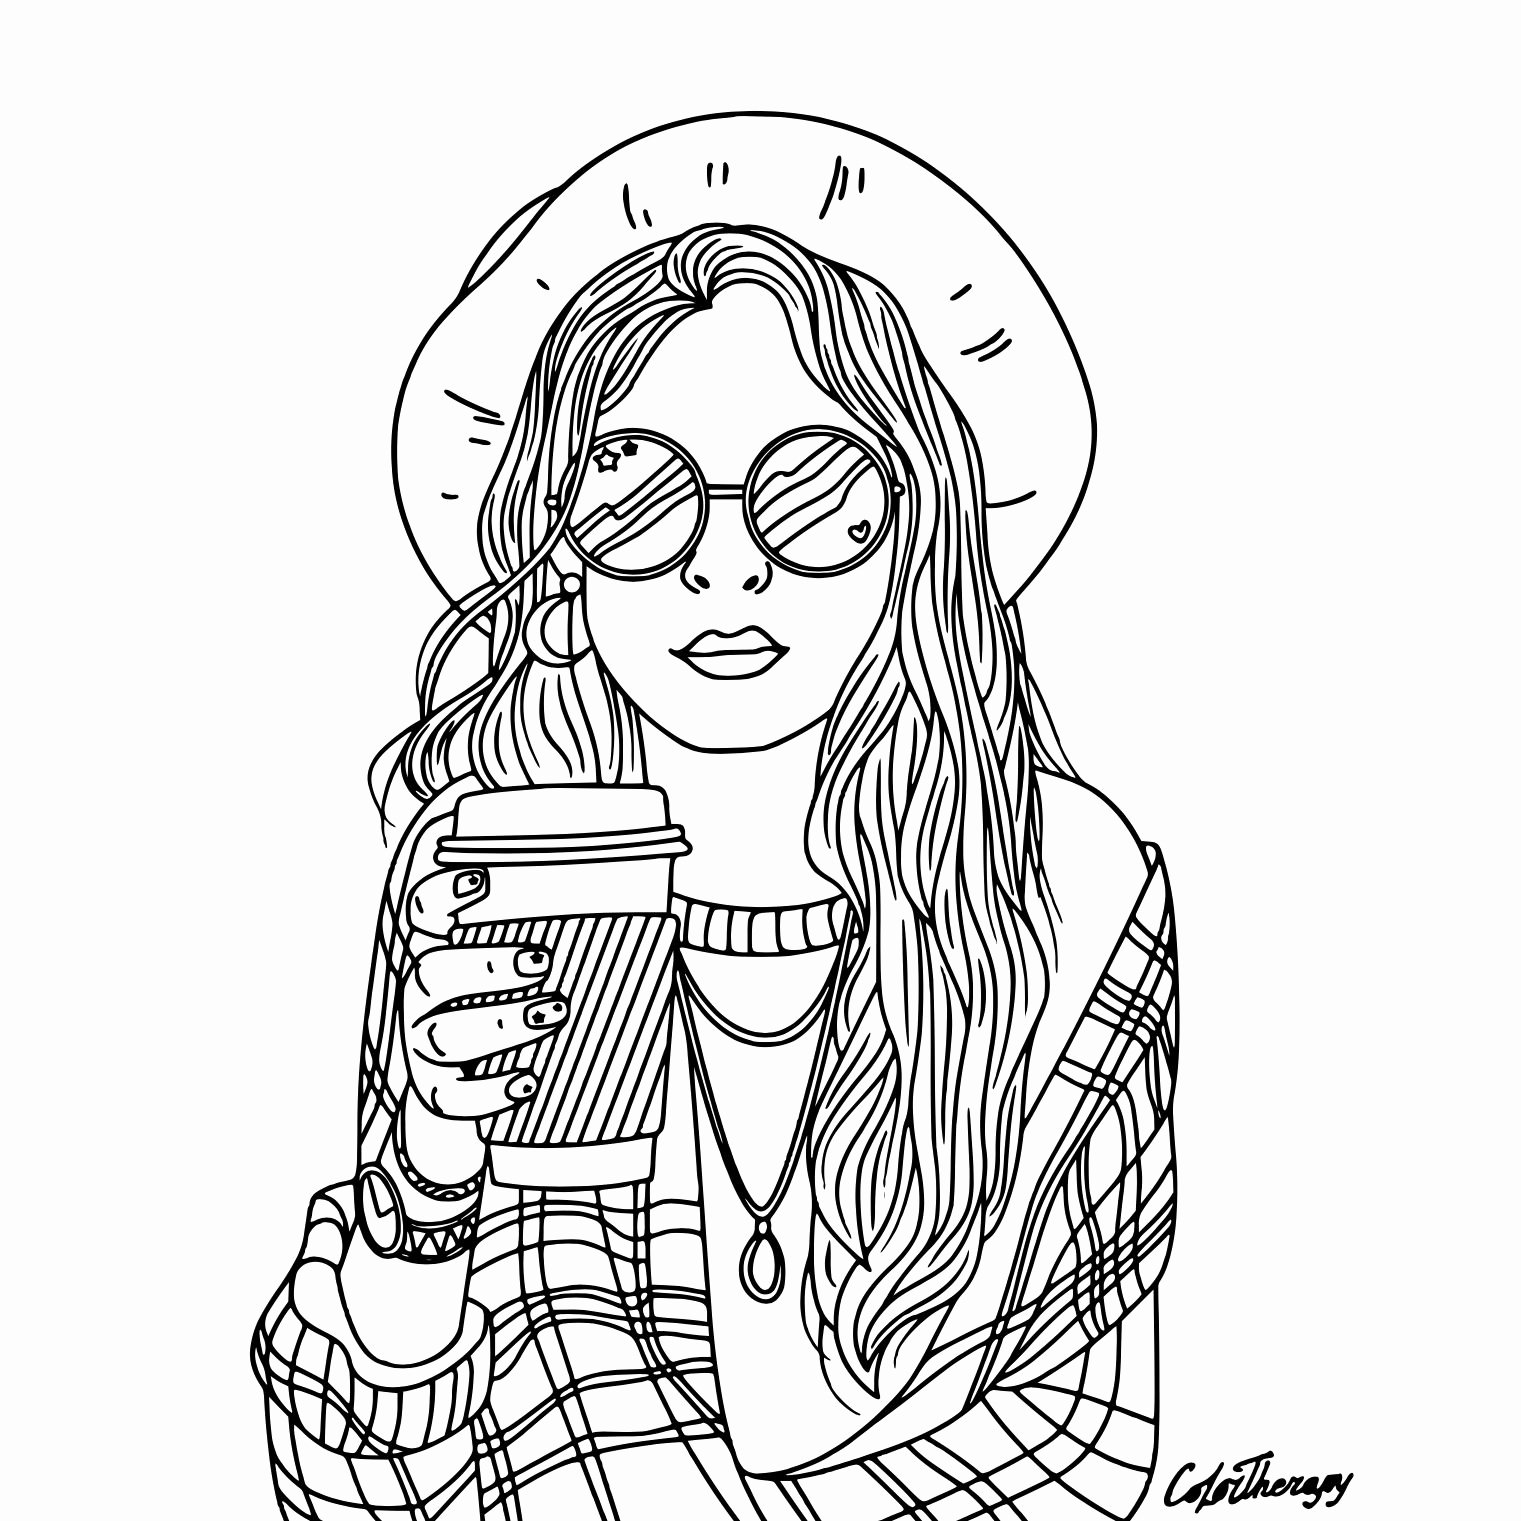 coloring pages of girls realistic the best ideas for realistic girl coloring pages best pages coloring of girls realistic